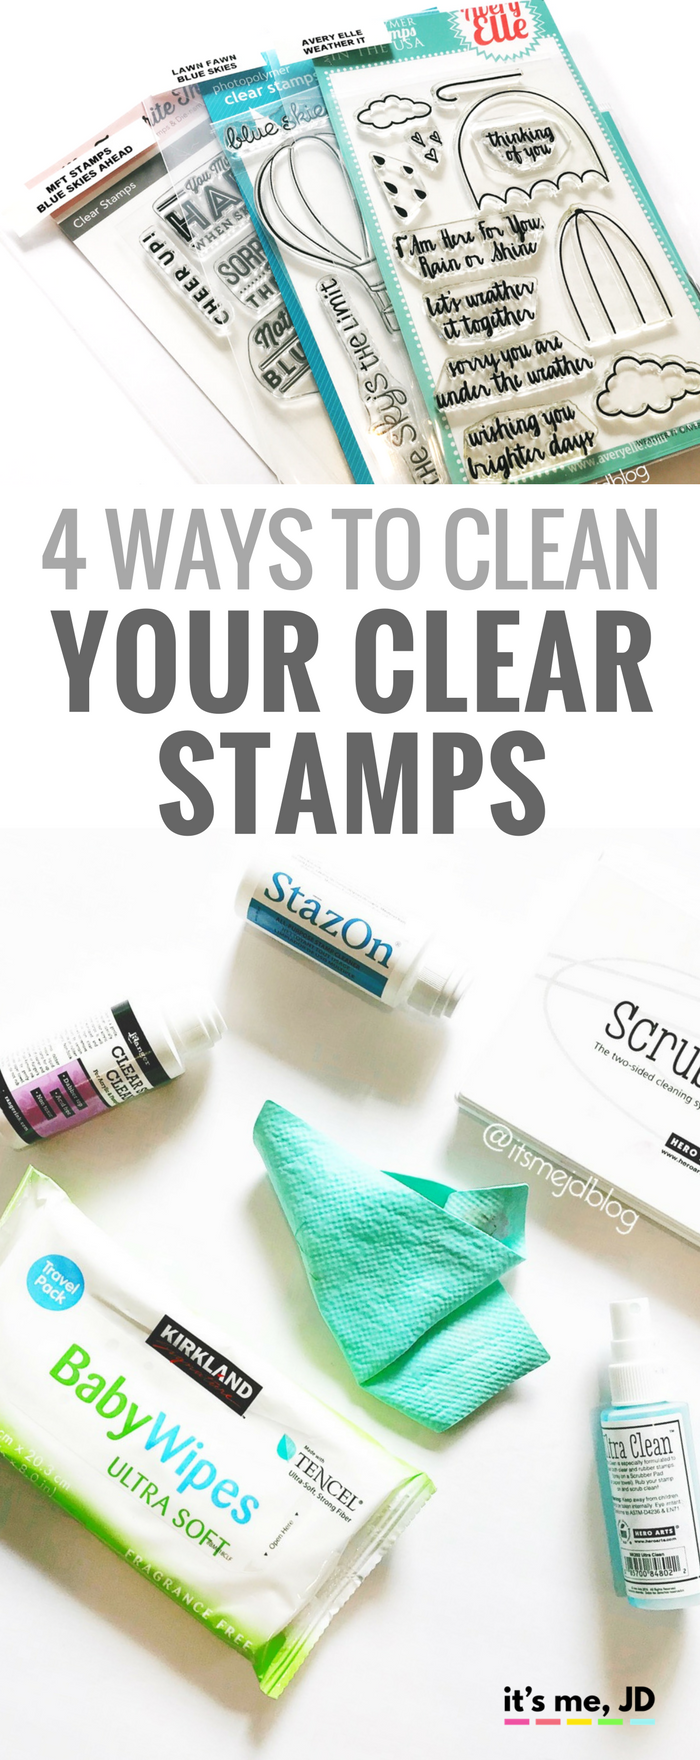 How to Clean Your Clear or Photopolymer Stamps That May Be Stained with Ink, Tutorial